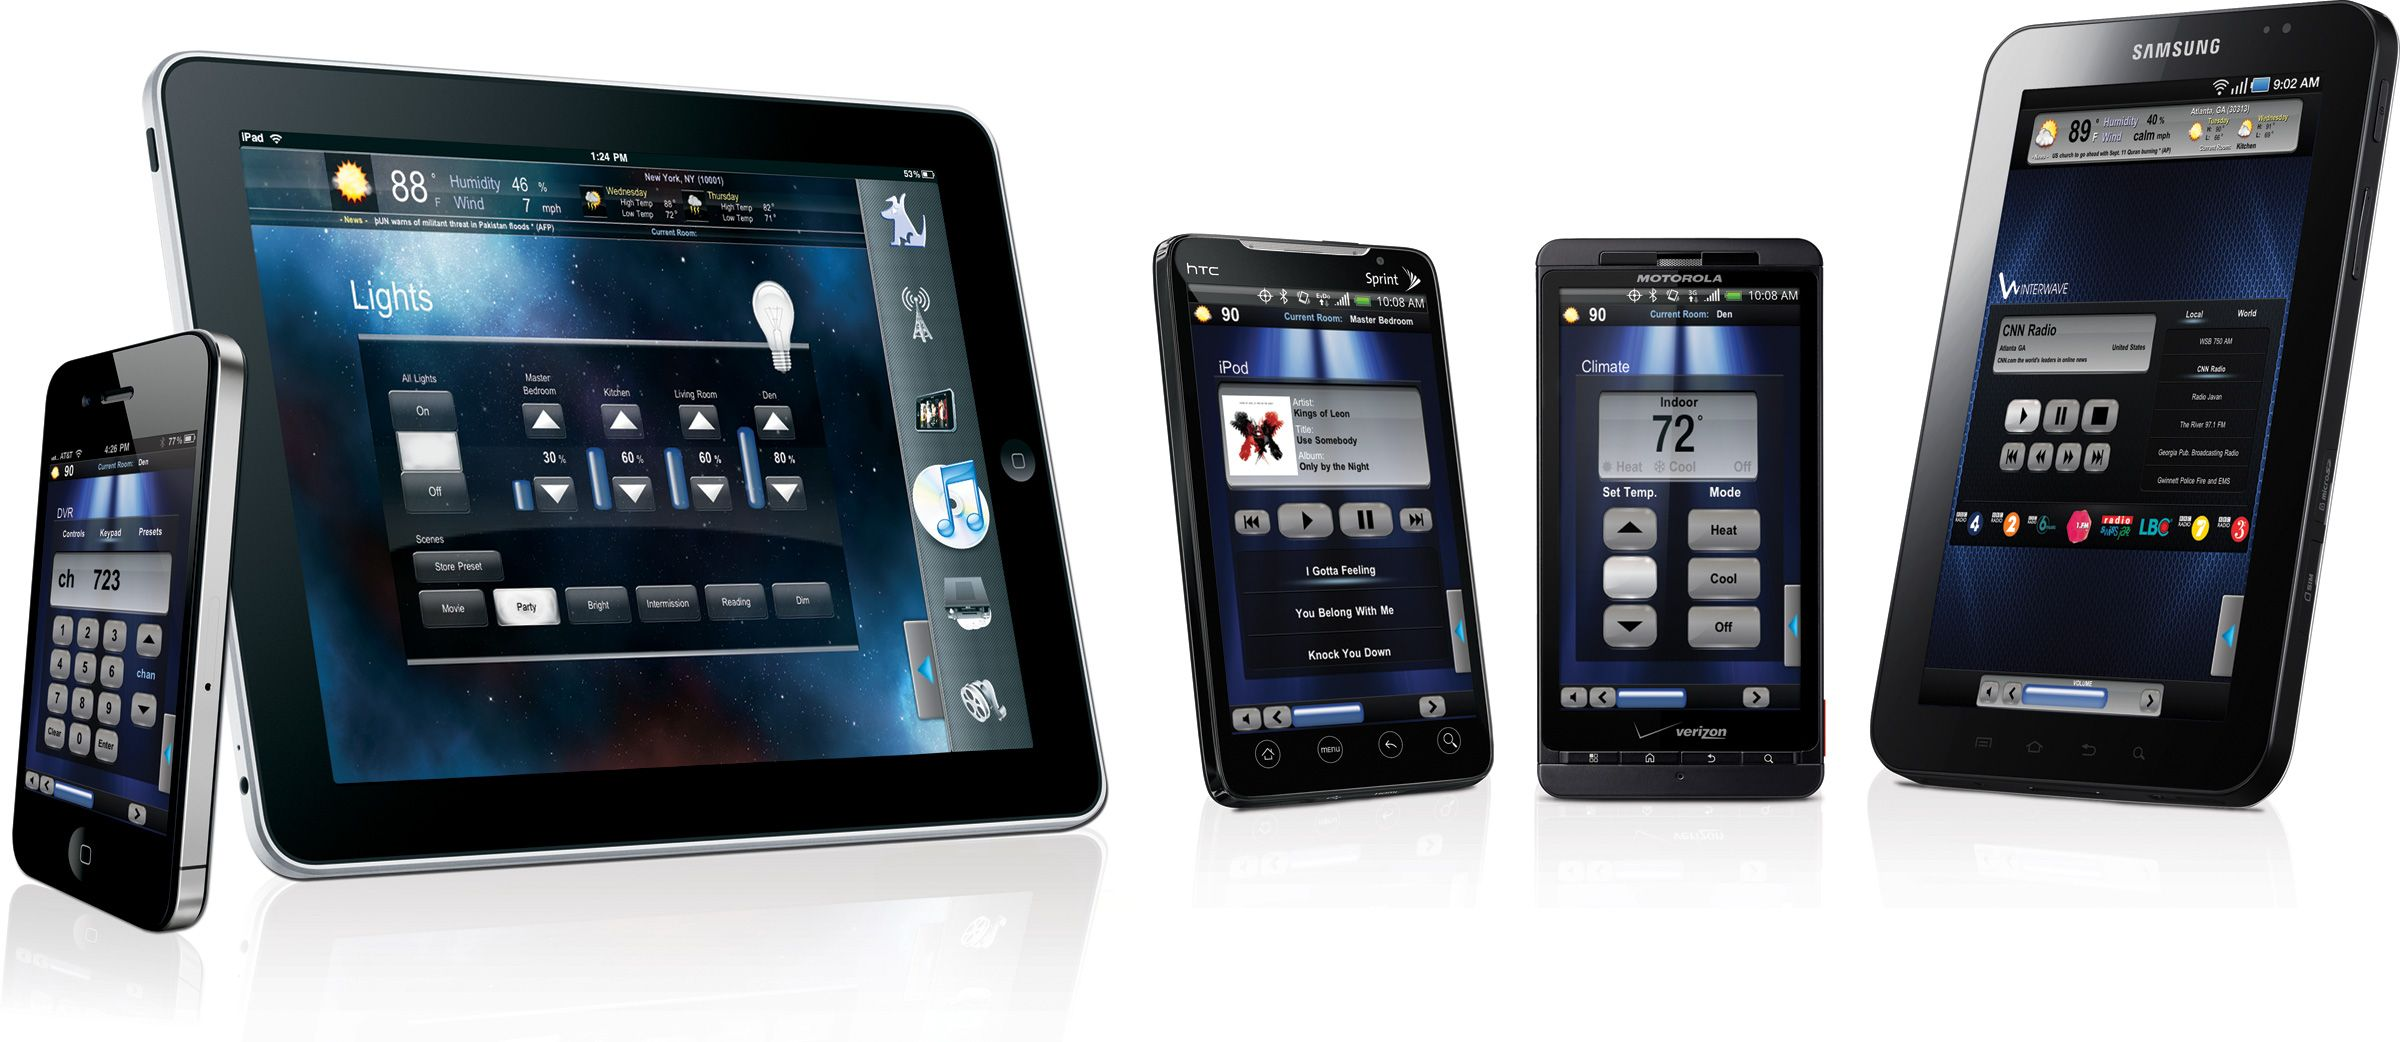 Crestron Control Interfaces Home Security Companies Home Security Systems Home Automation